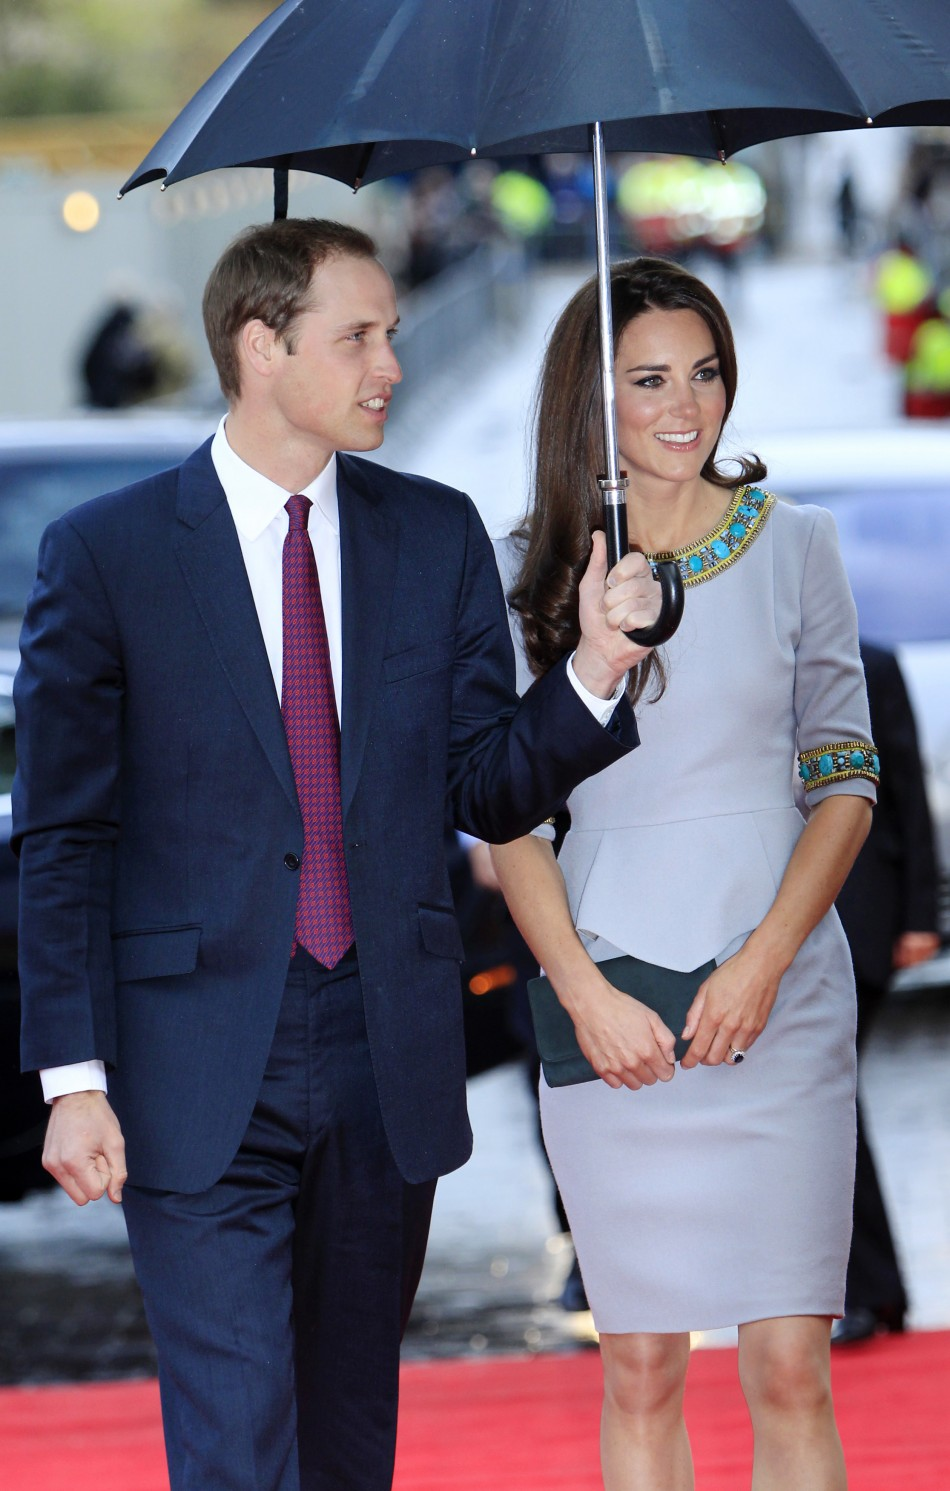 Britains Prince William and Catherine, Duchess of Cambridge arrive for the British Premiere of quotAfrican Catsquot at the BFI Southbank in London